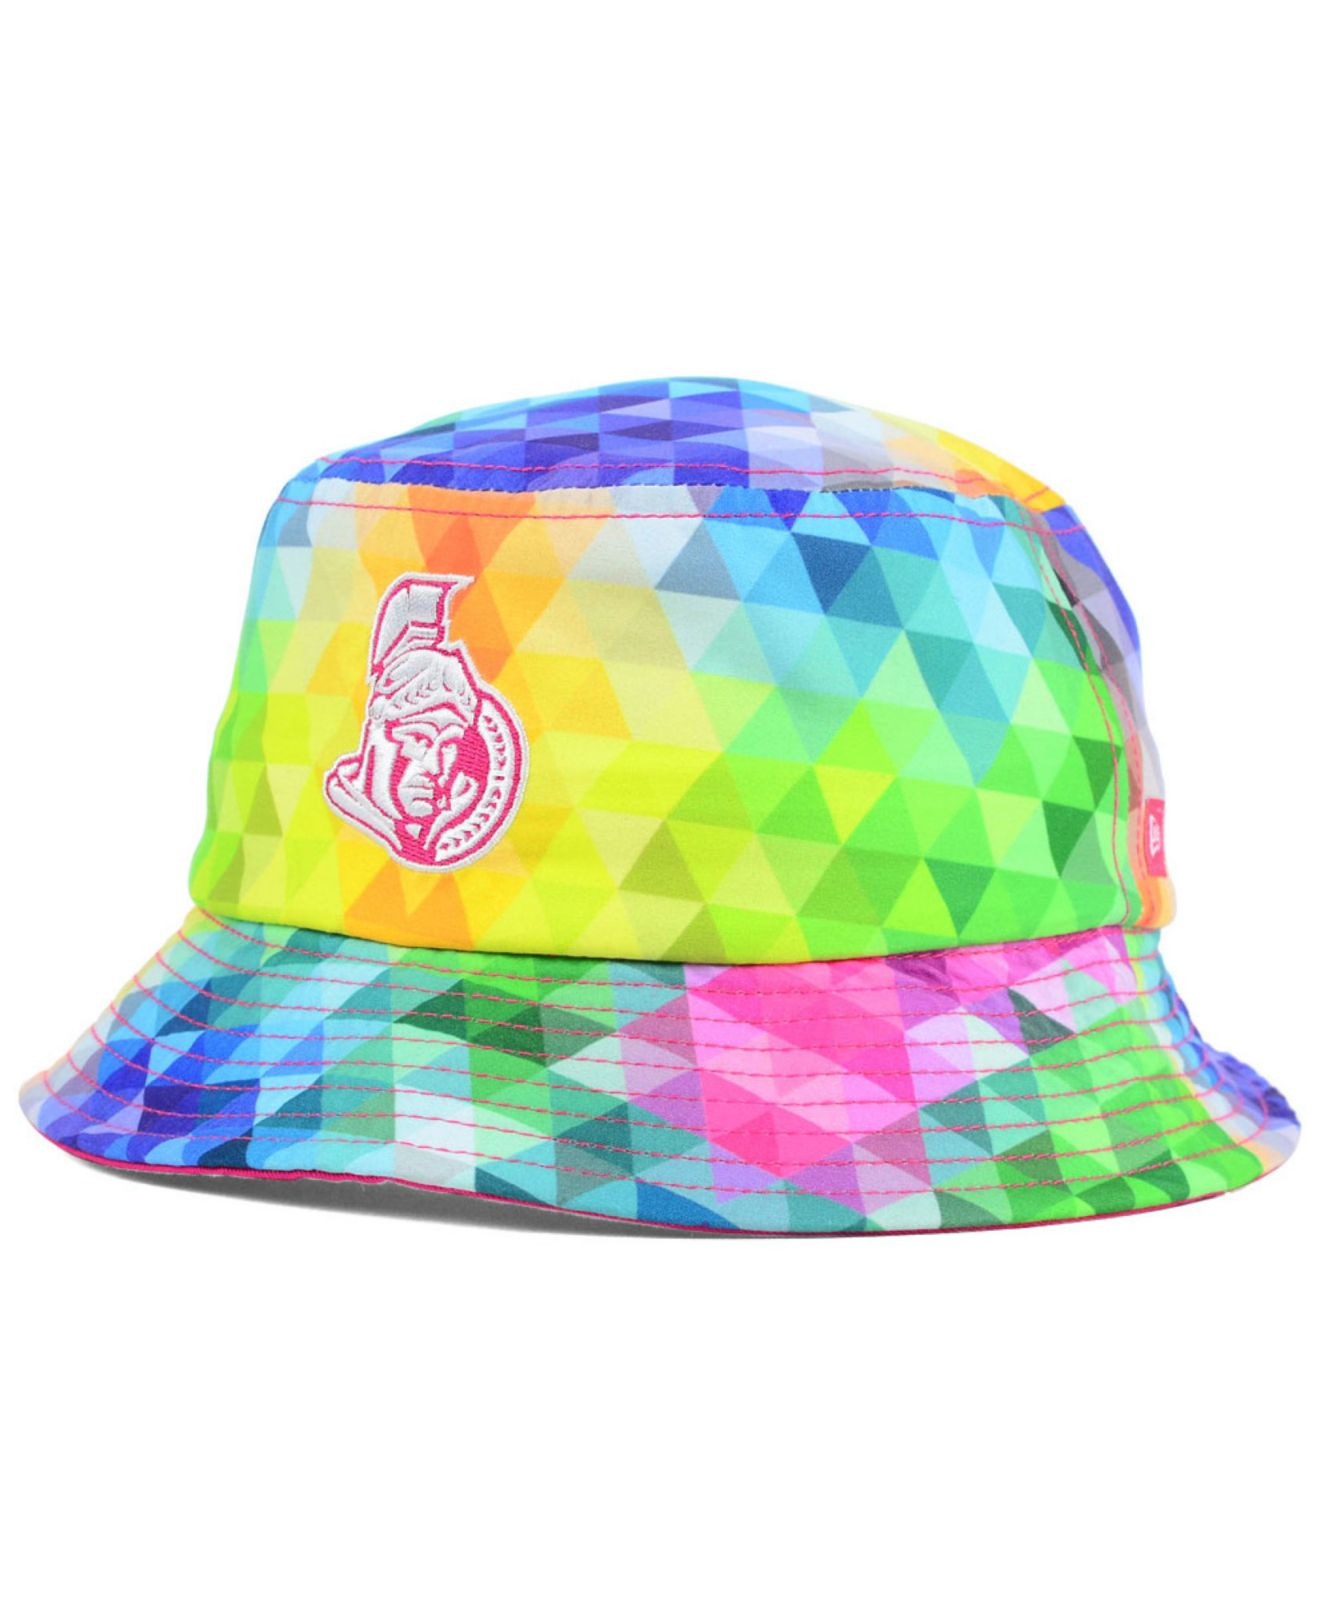 73edd4ee9d5 Lyst - KTZ Girls  Ottawa Senators Gem Bucket Hat